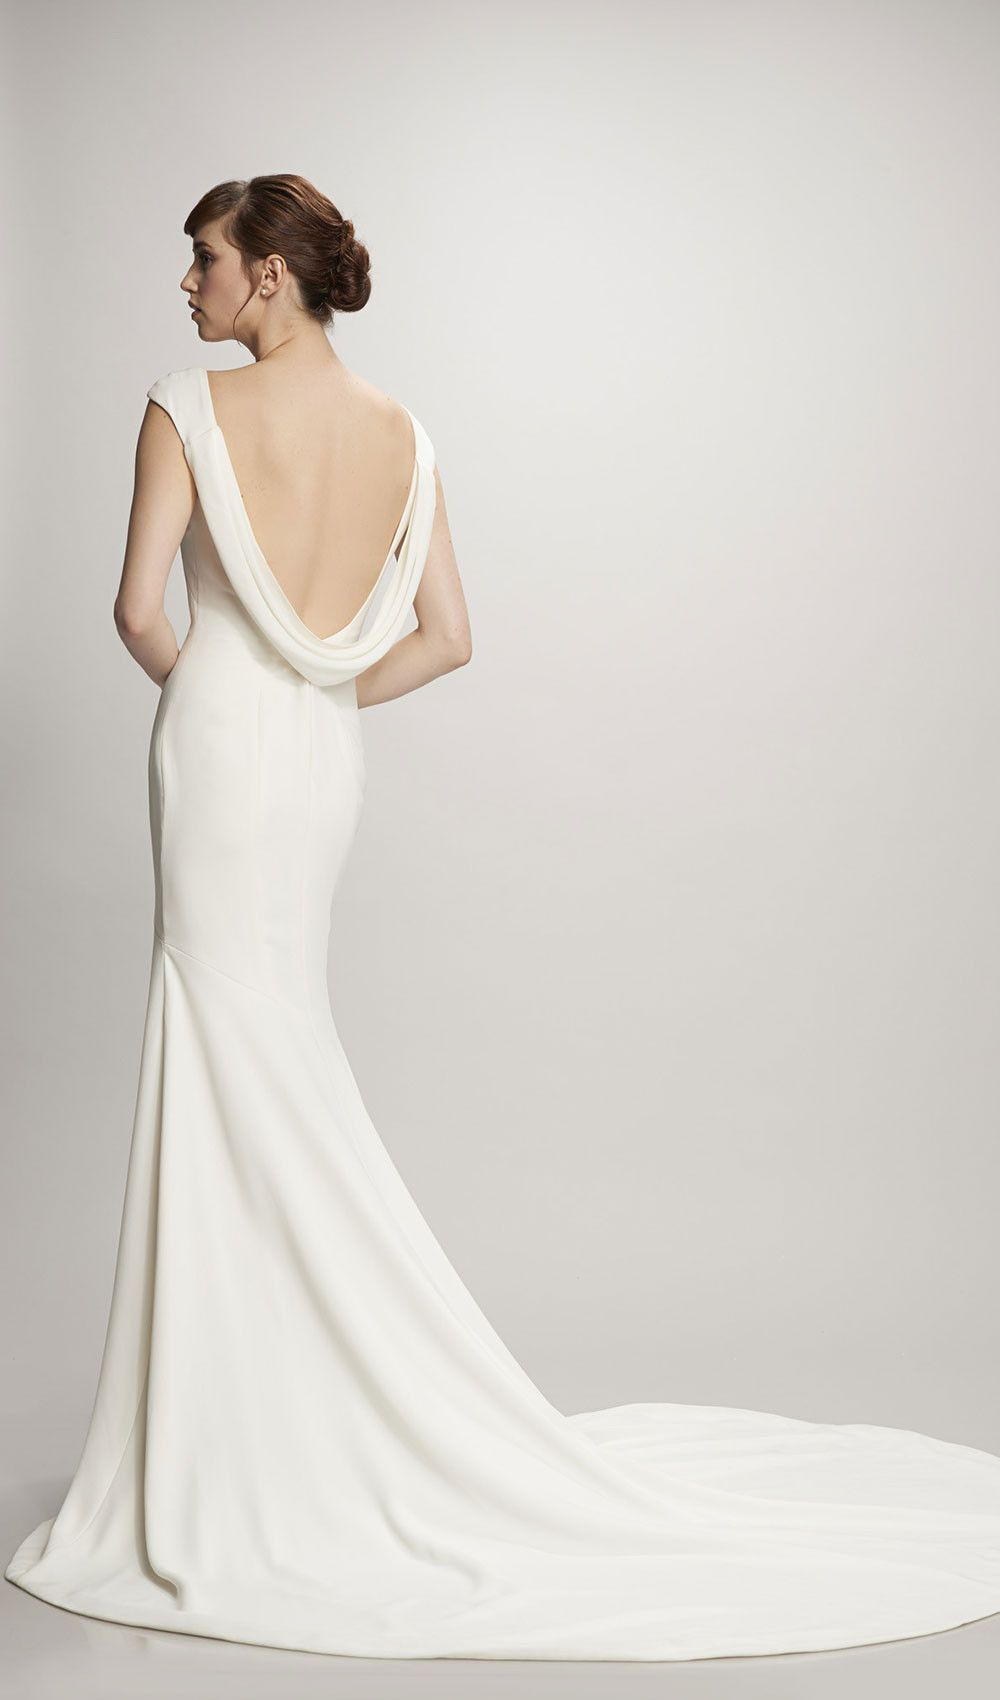 Show off your back in this classic wedding dress with a low back ...